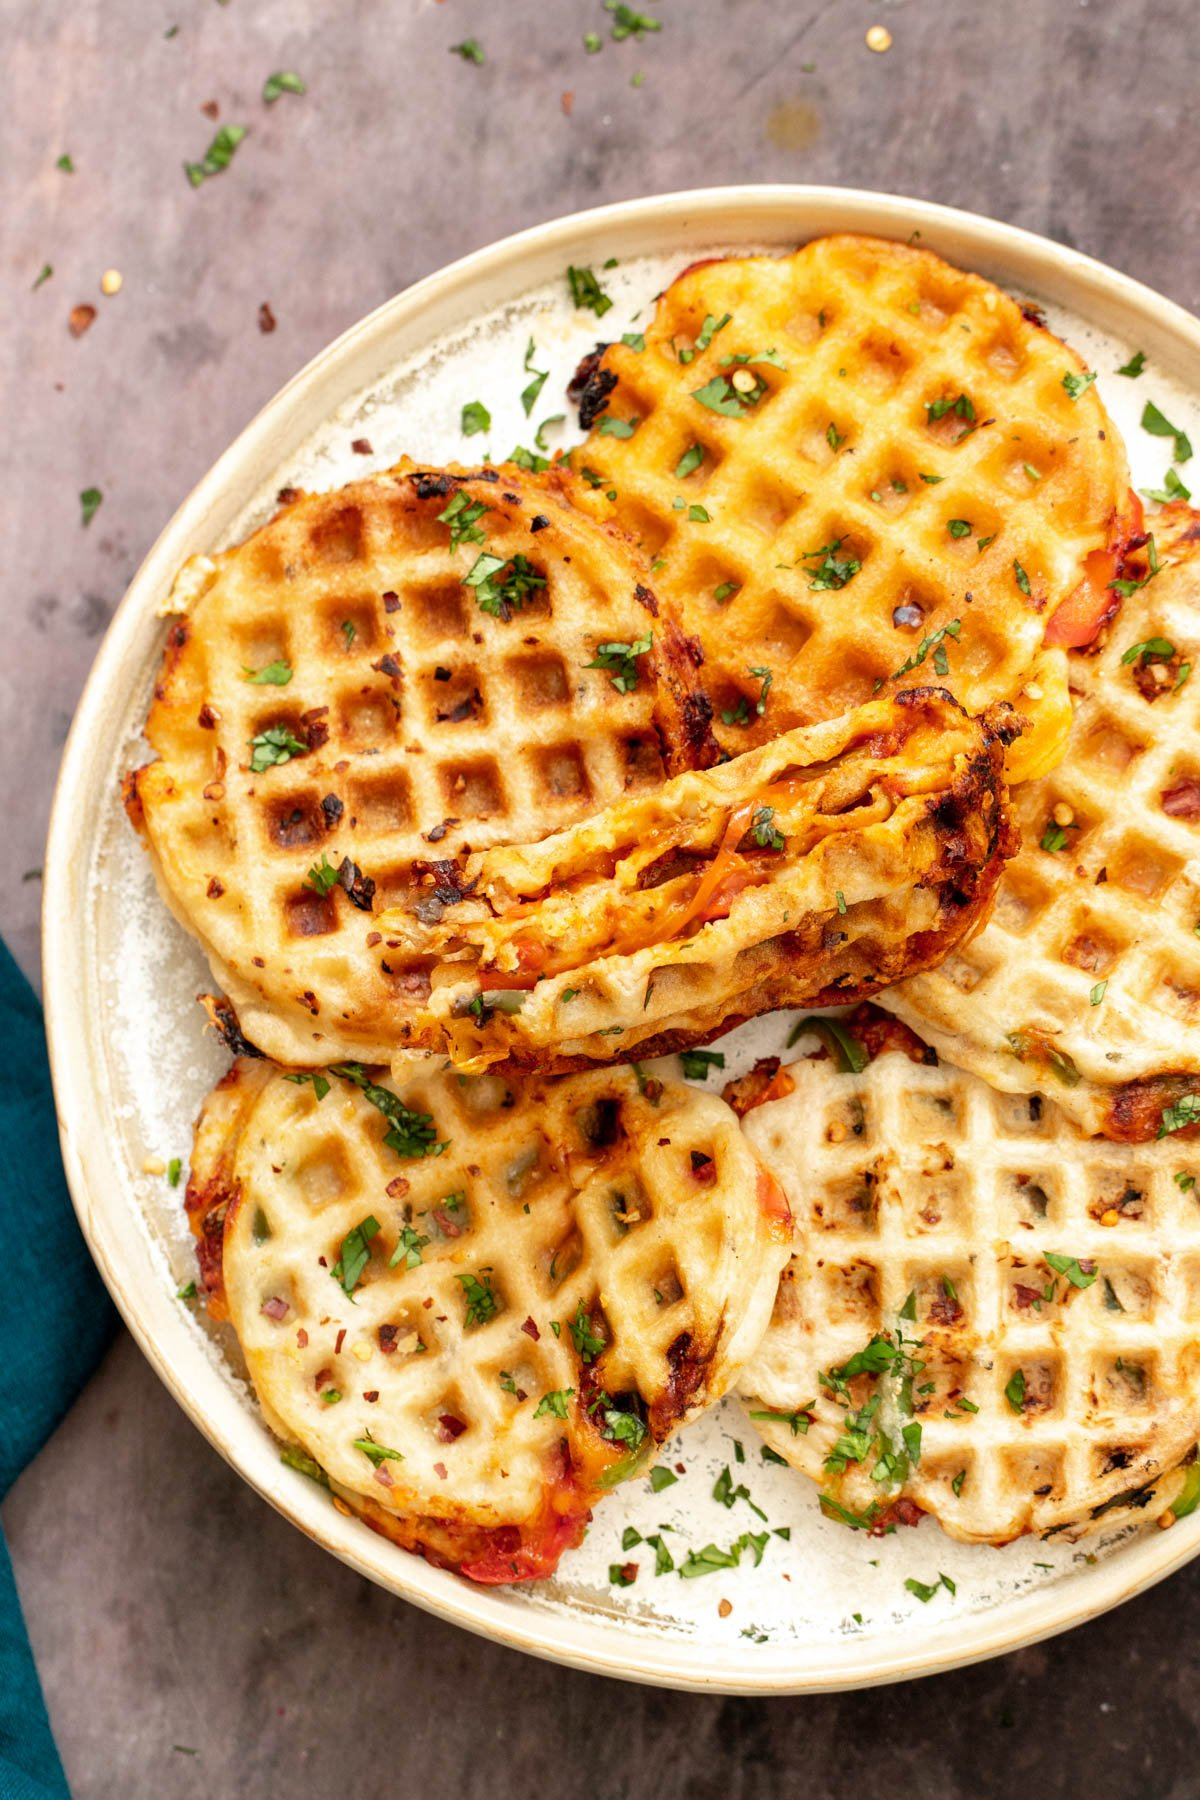 a plate with freshly baked vegan pizza waffles with one waffle being cut into half to reveal cheesy filling